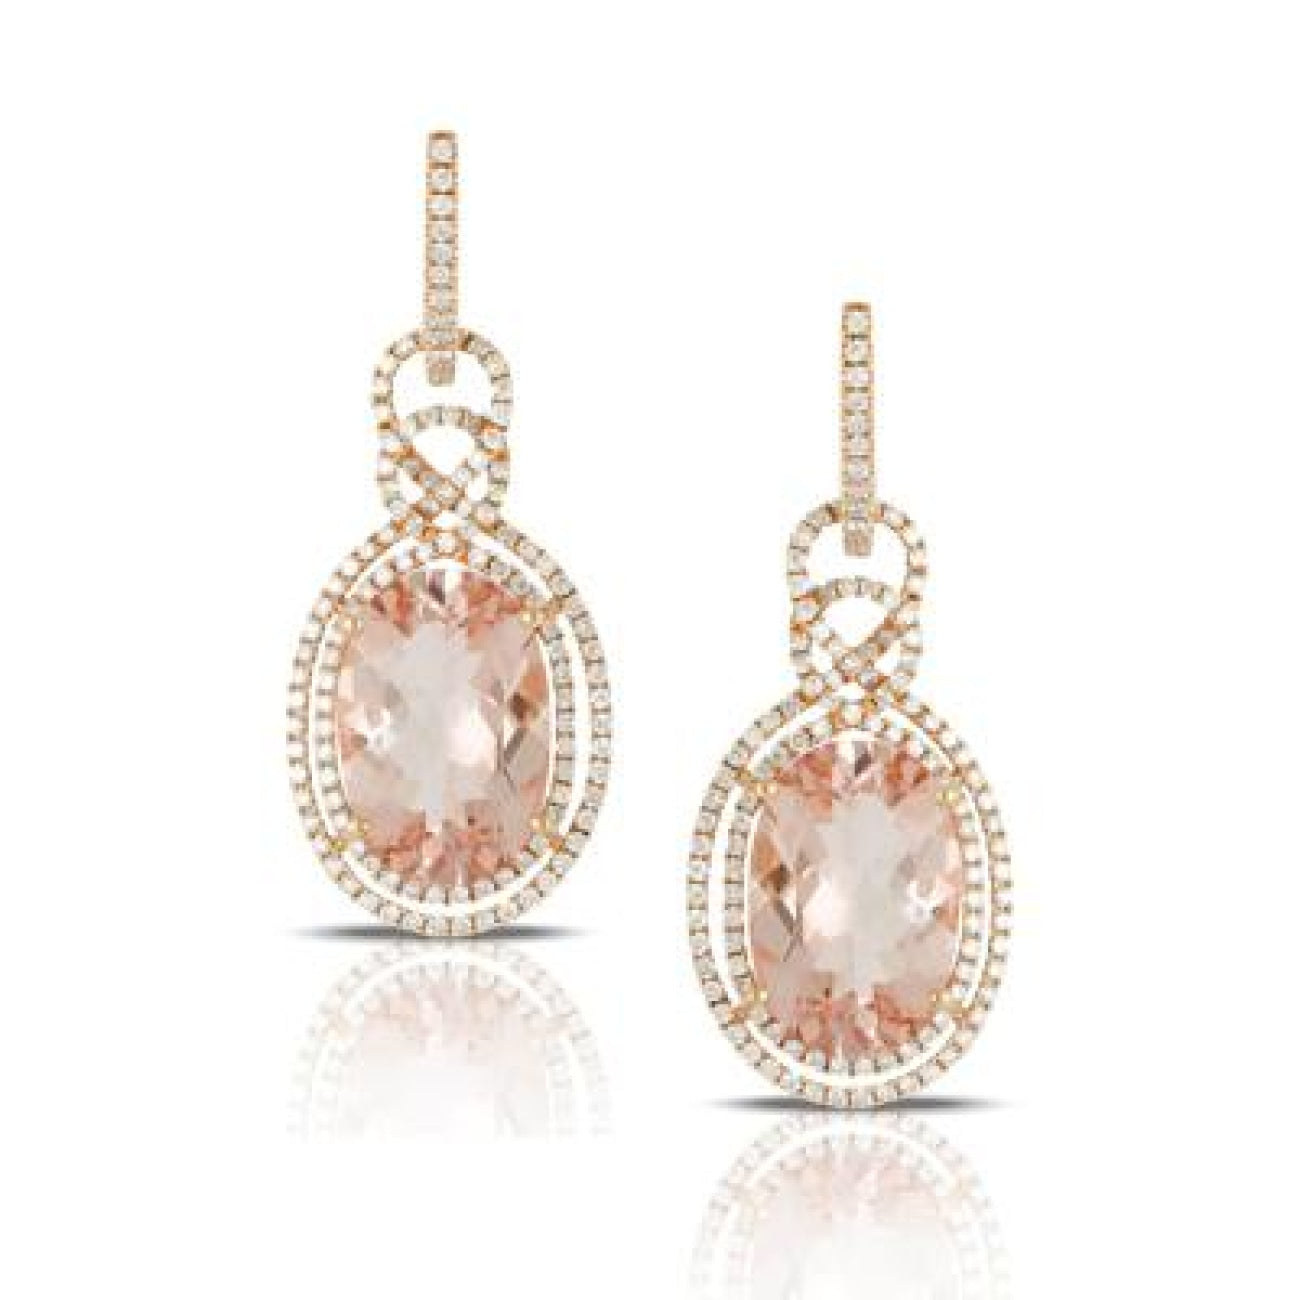 Doves Jewelry - E7901MG ROSÉ | Manfredi Jewels